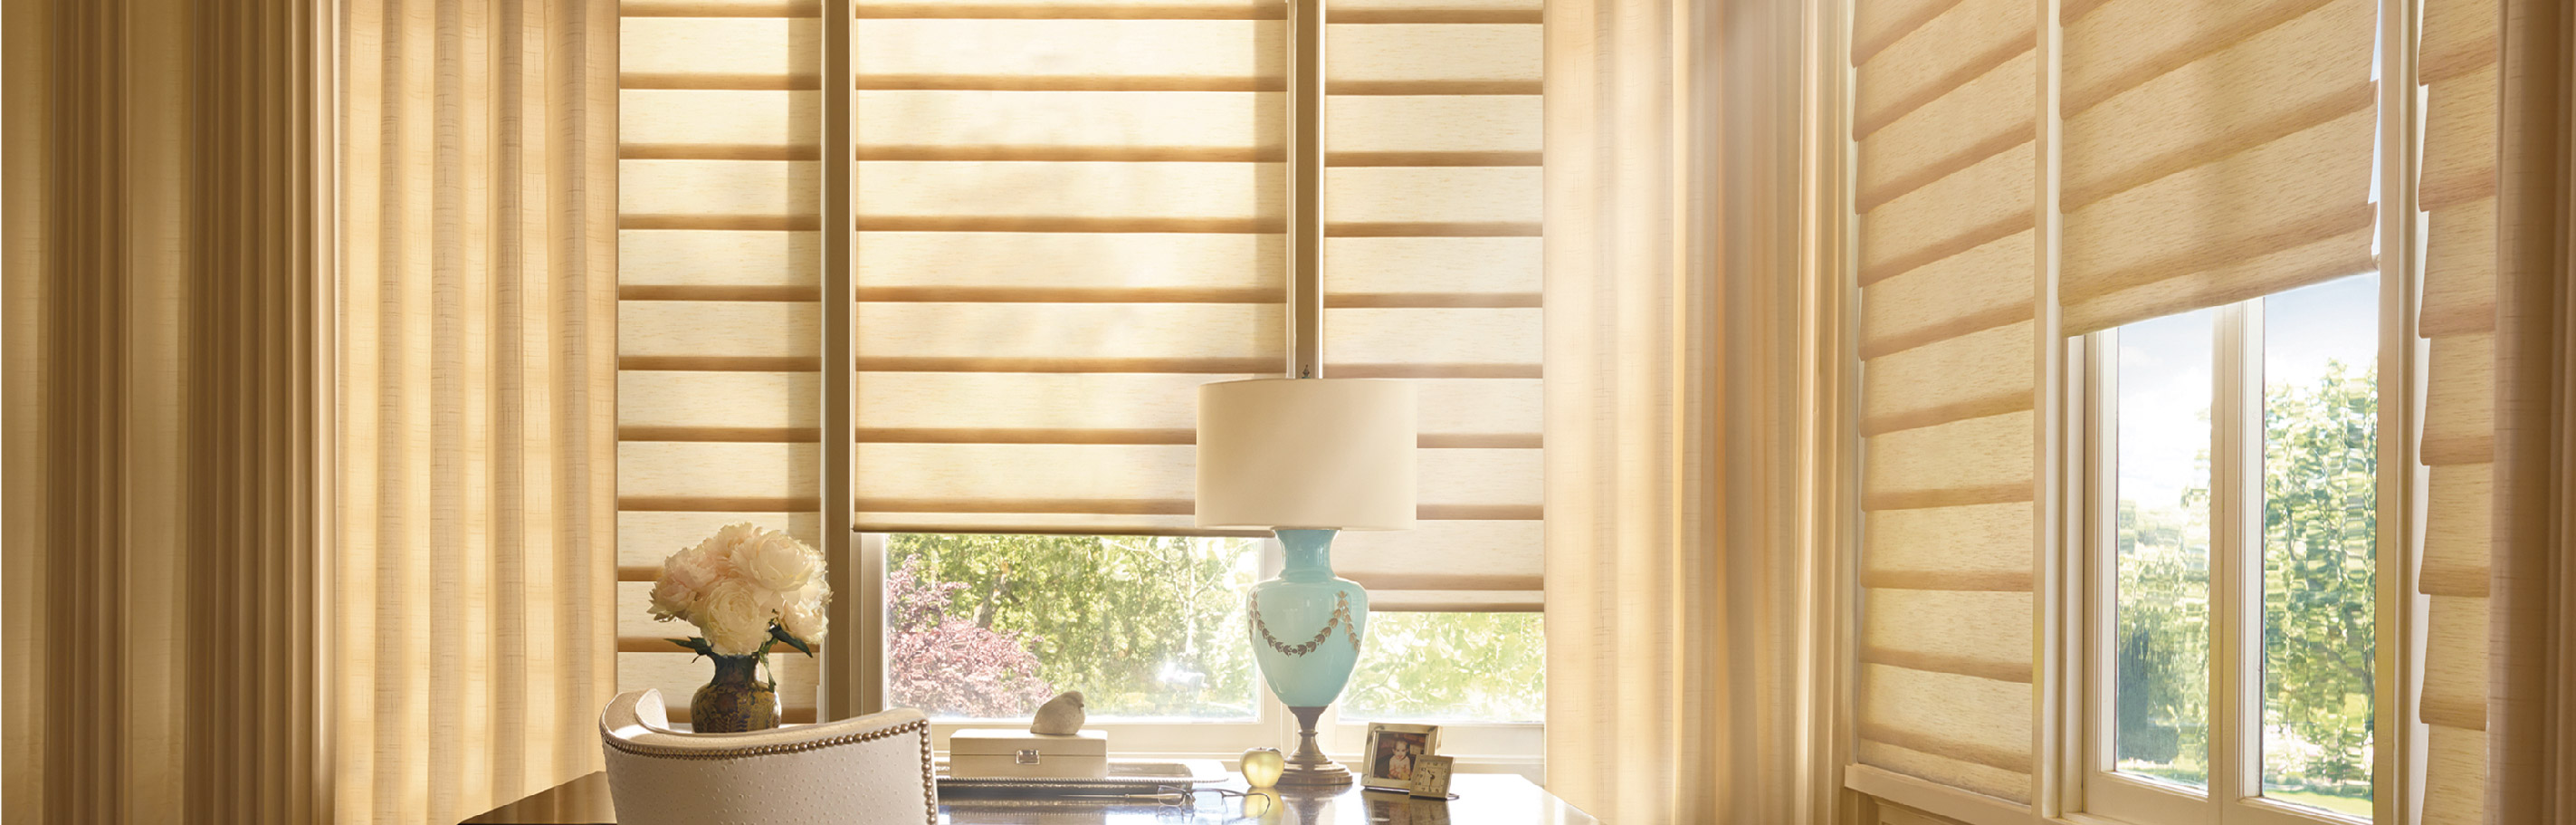 Luxaflex Showcase - Products - Softshades and Fabrics - Modern Roman Shades Bottom